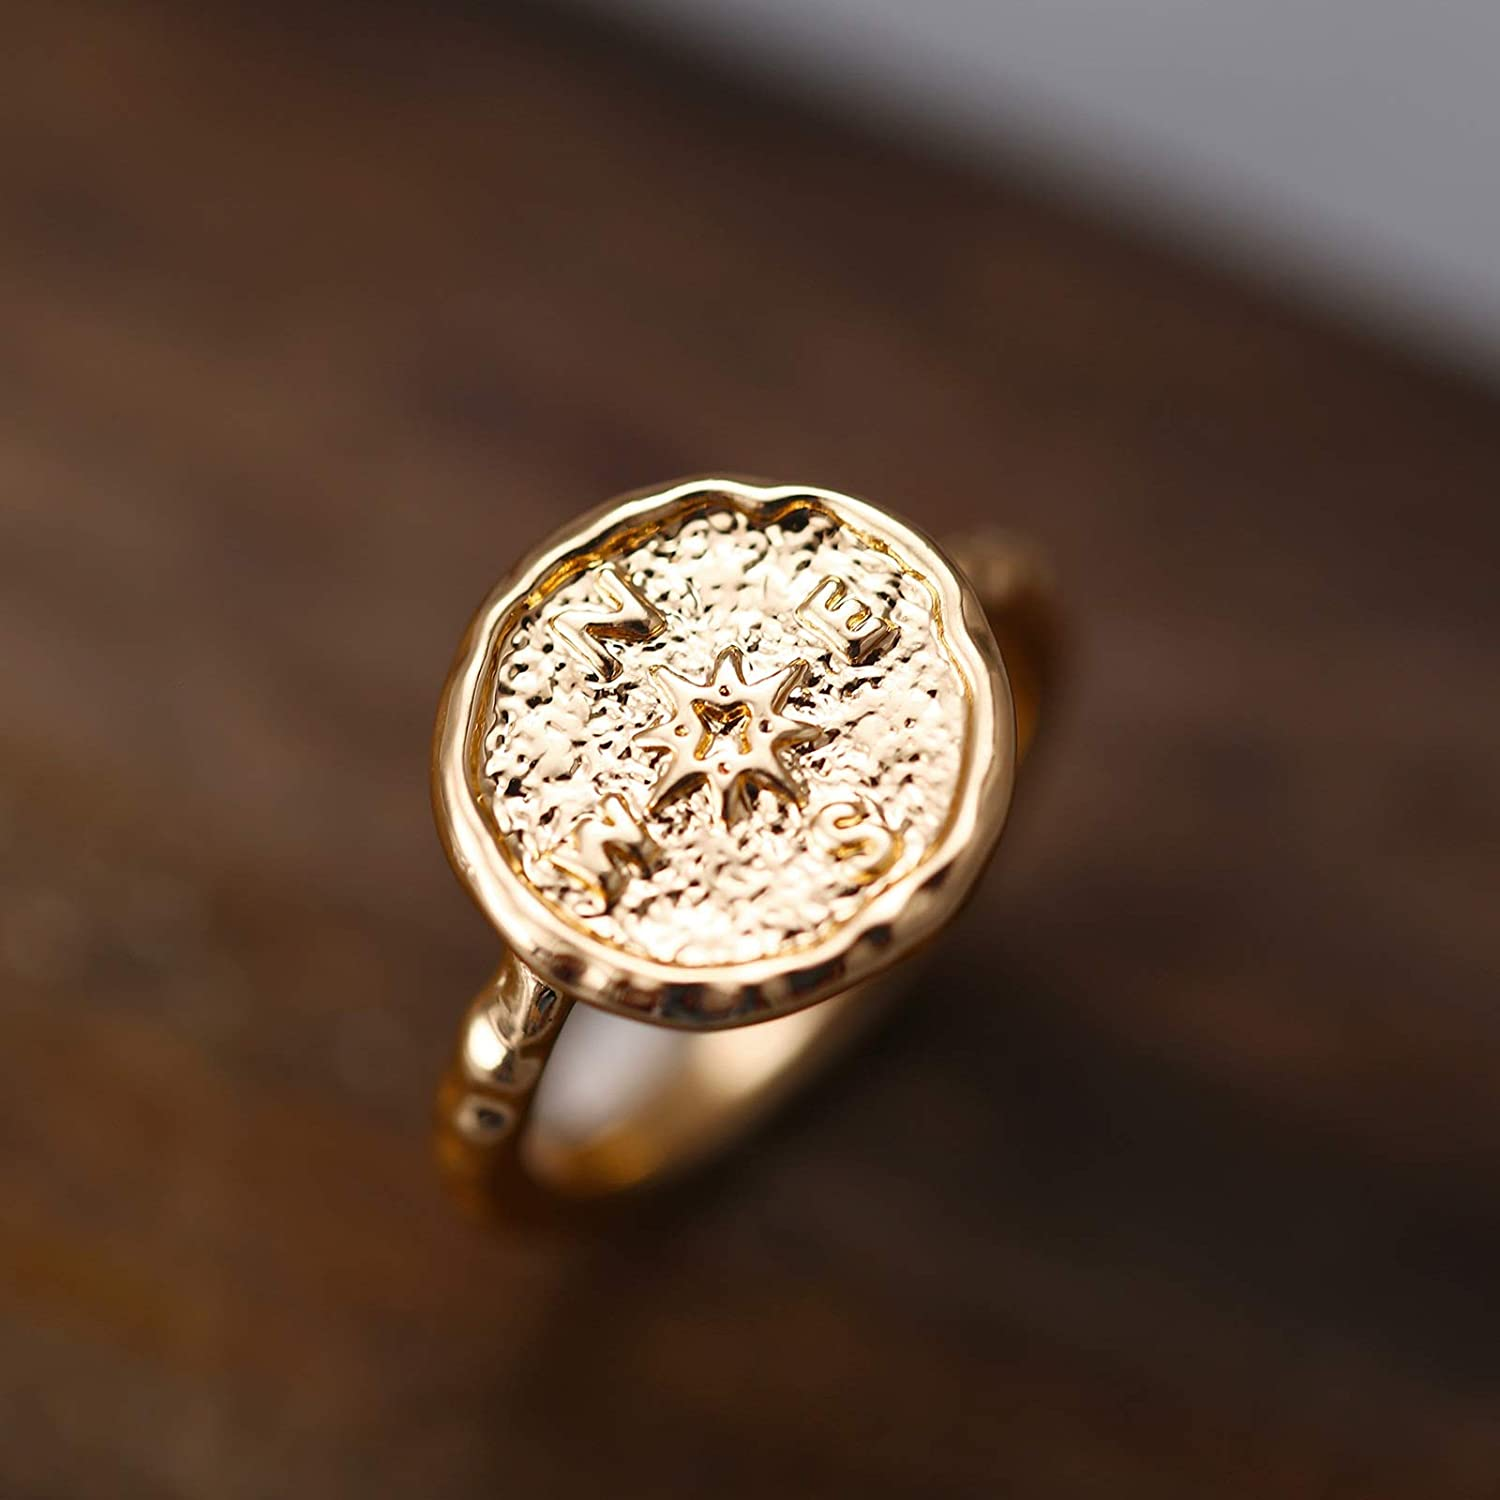 Aokarry Fashion Gold Plated Compass Ring for Women in Alloy Size 9